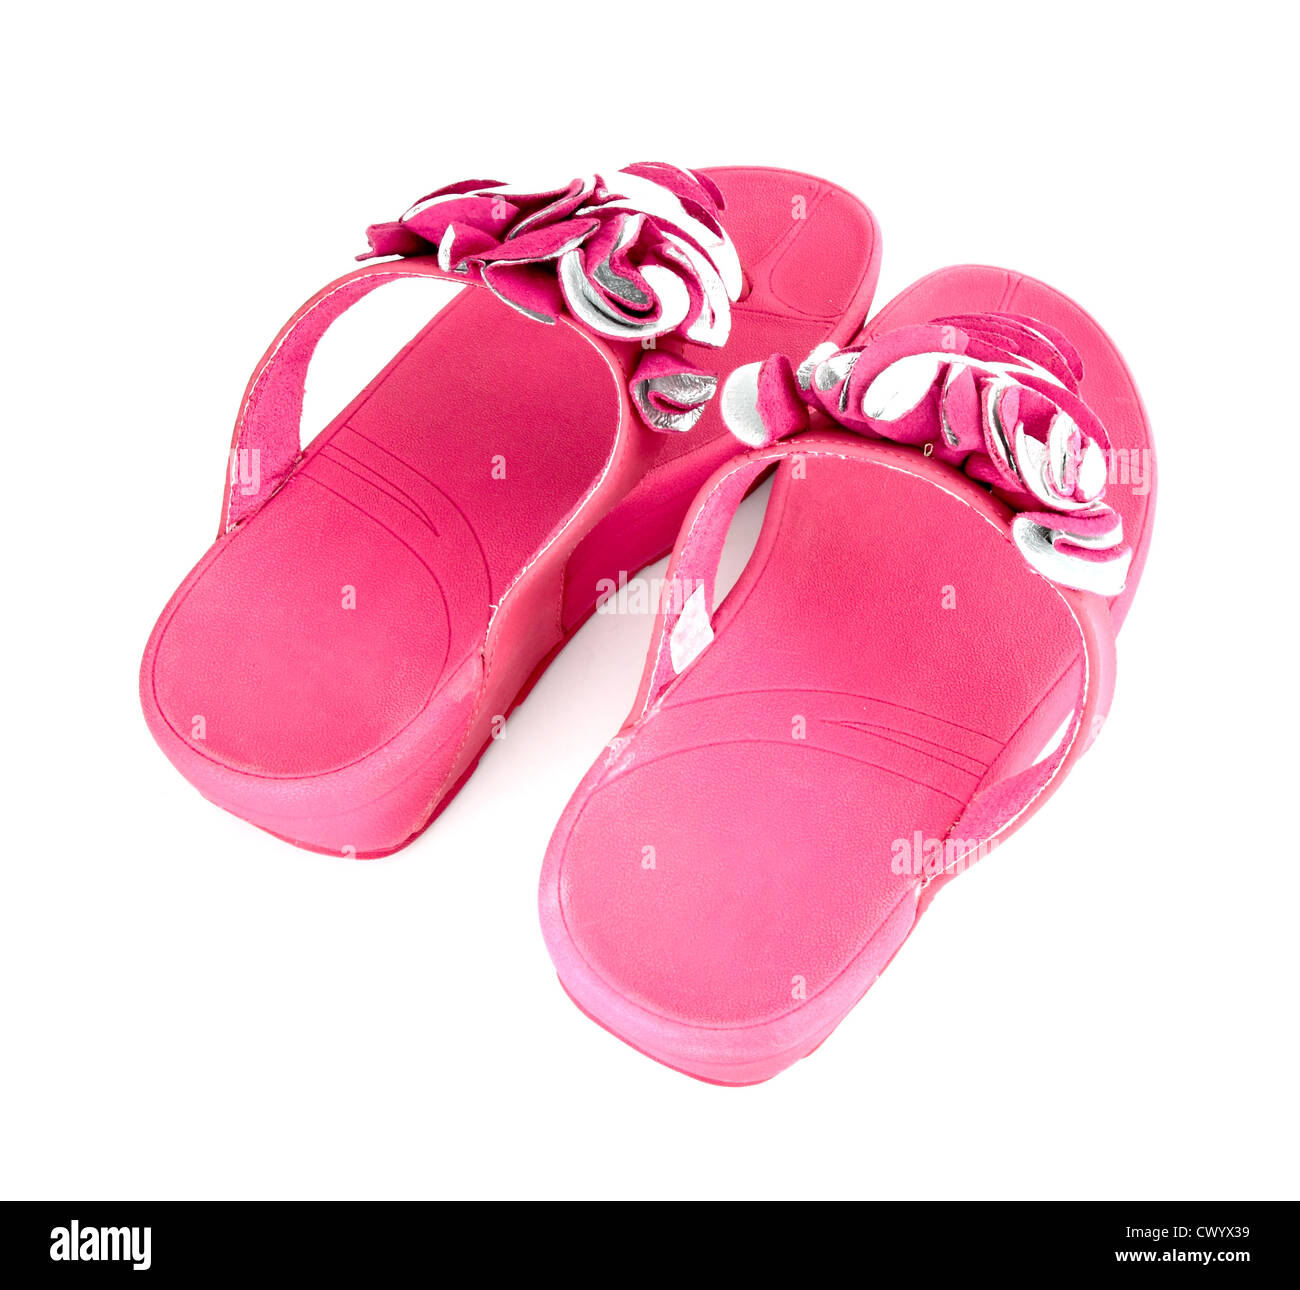 1f723ddd822 Pink Fluffy Slippers Stock Photos   Pink Fluffy Slippers Stock ...